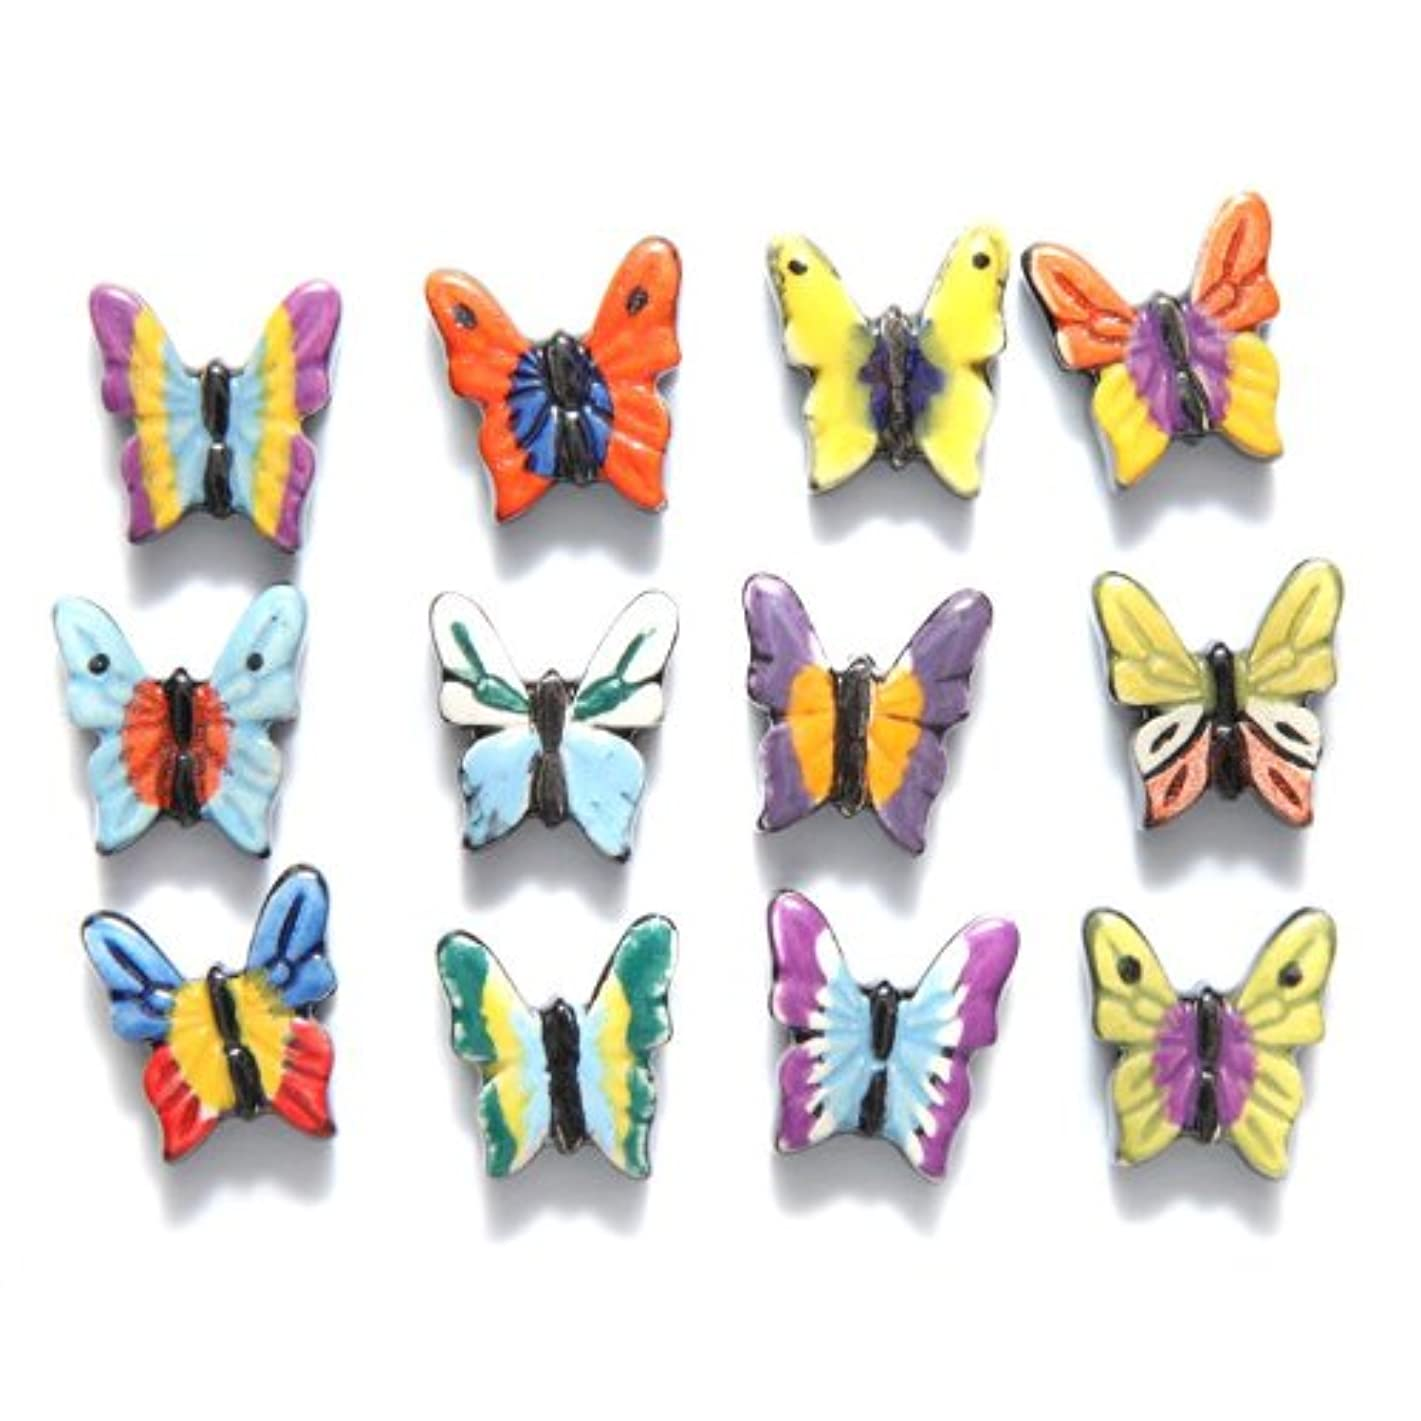 Shipwreck Beads 18 by 19mm Peruvian Hand Crafted Ceramic Butterflies Beads, Assorted Color, 3 per Pack